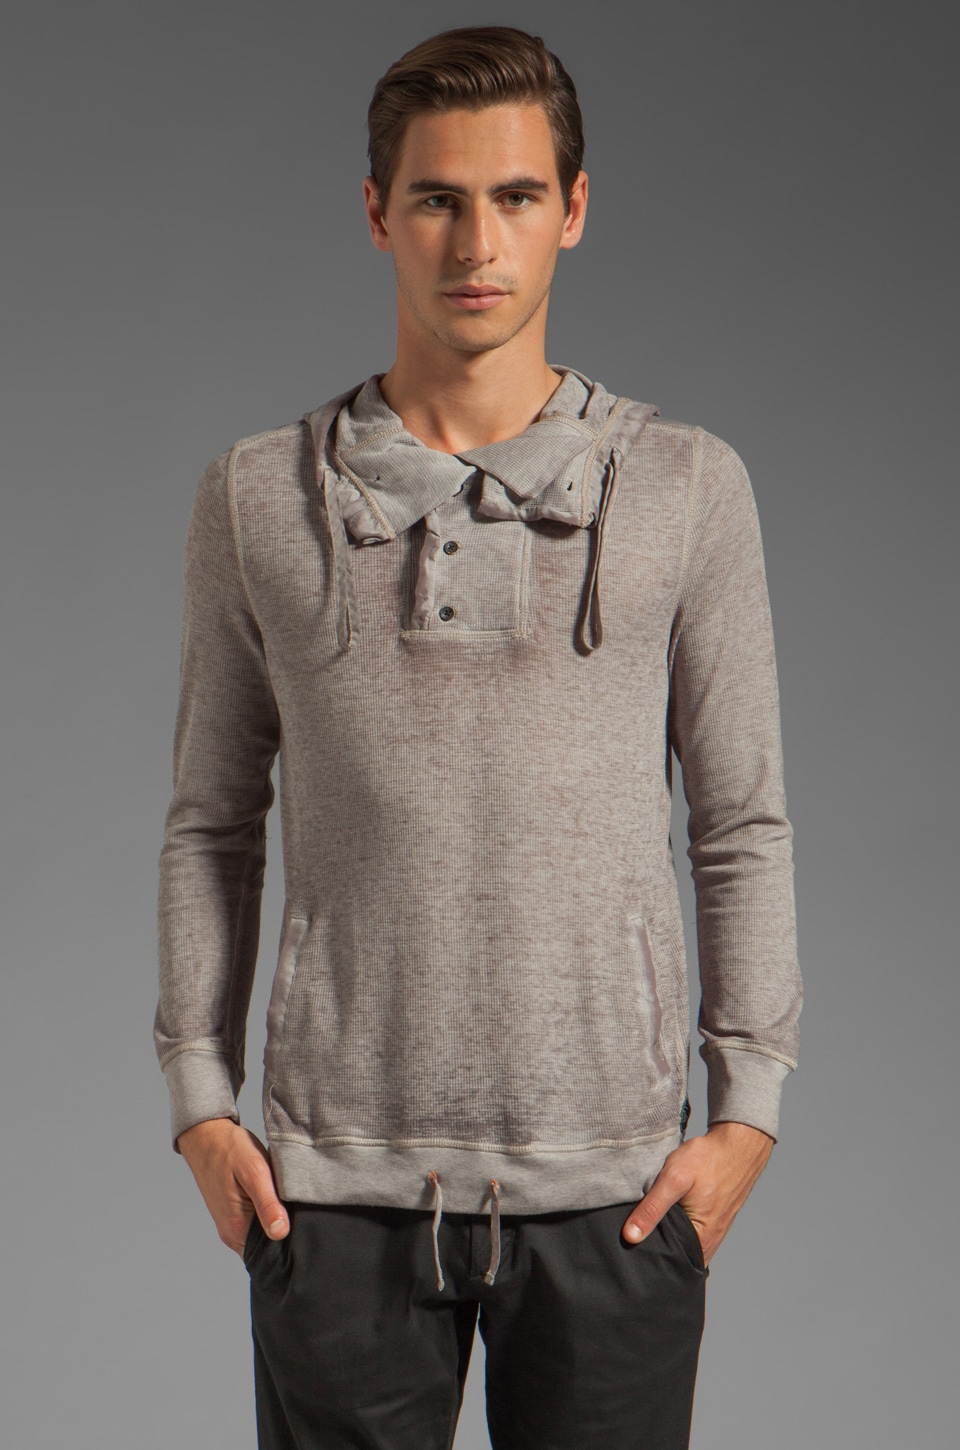 Cohesive & co. Skalden Burnout Thermal Hoodie in Taupe